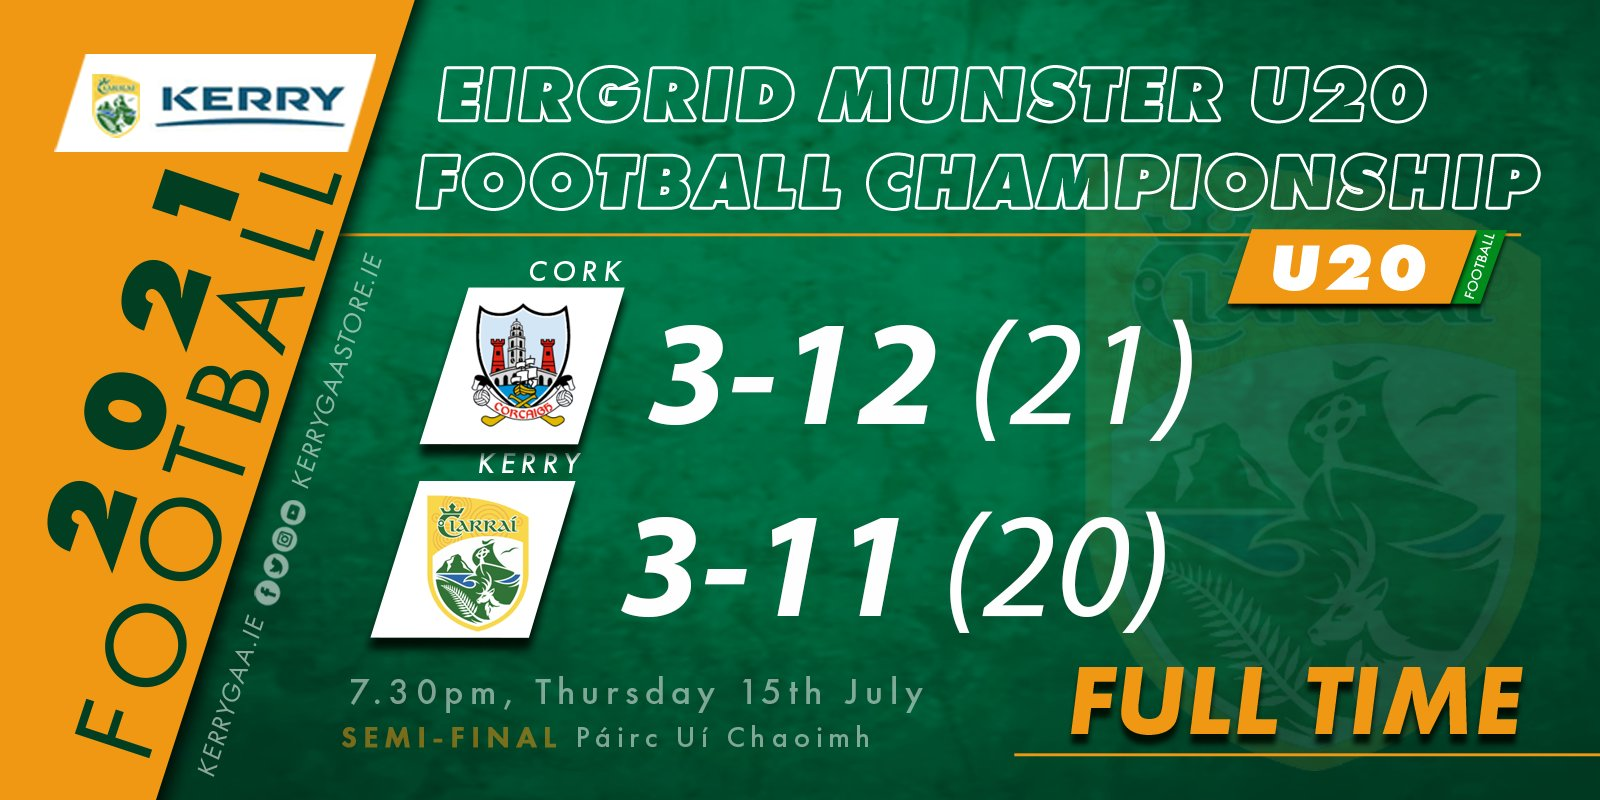 bow out with defeat to Cork in Munster Semi-Final